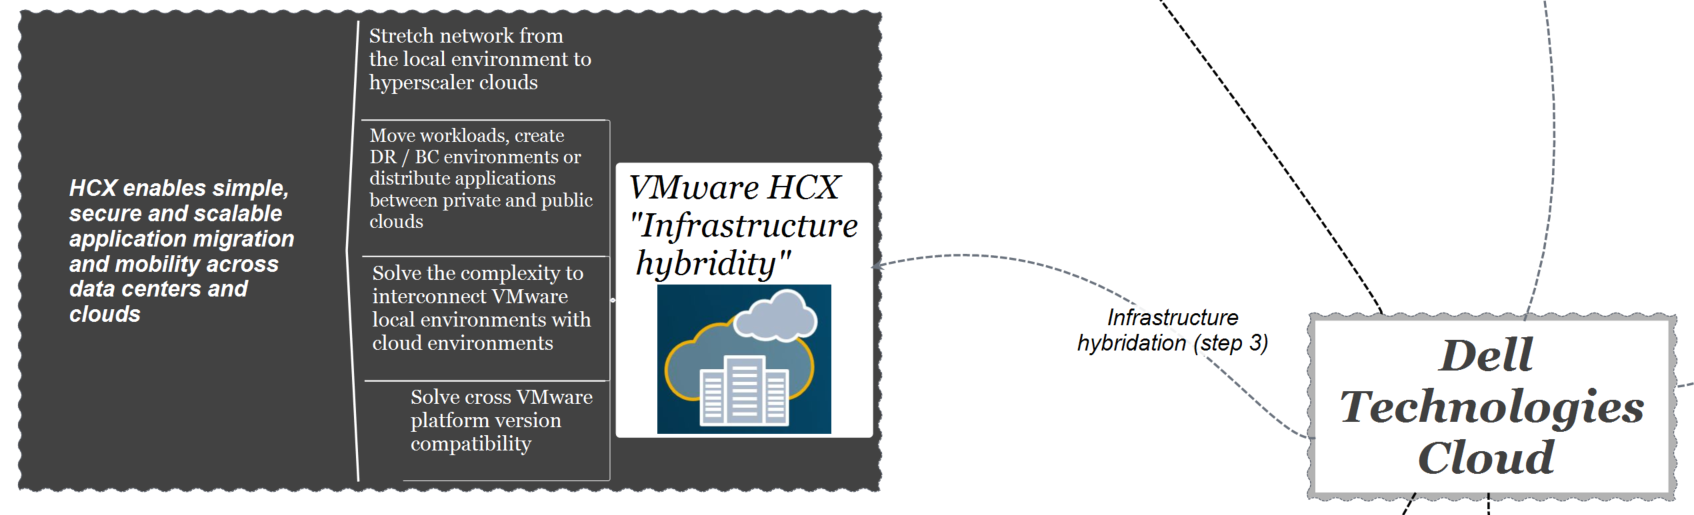 dell technologies cloud - infrastructure hybridity hcx